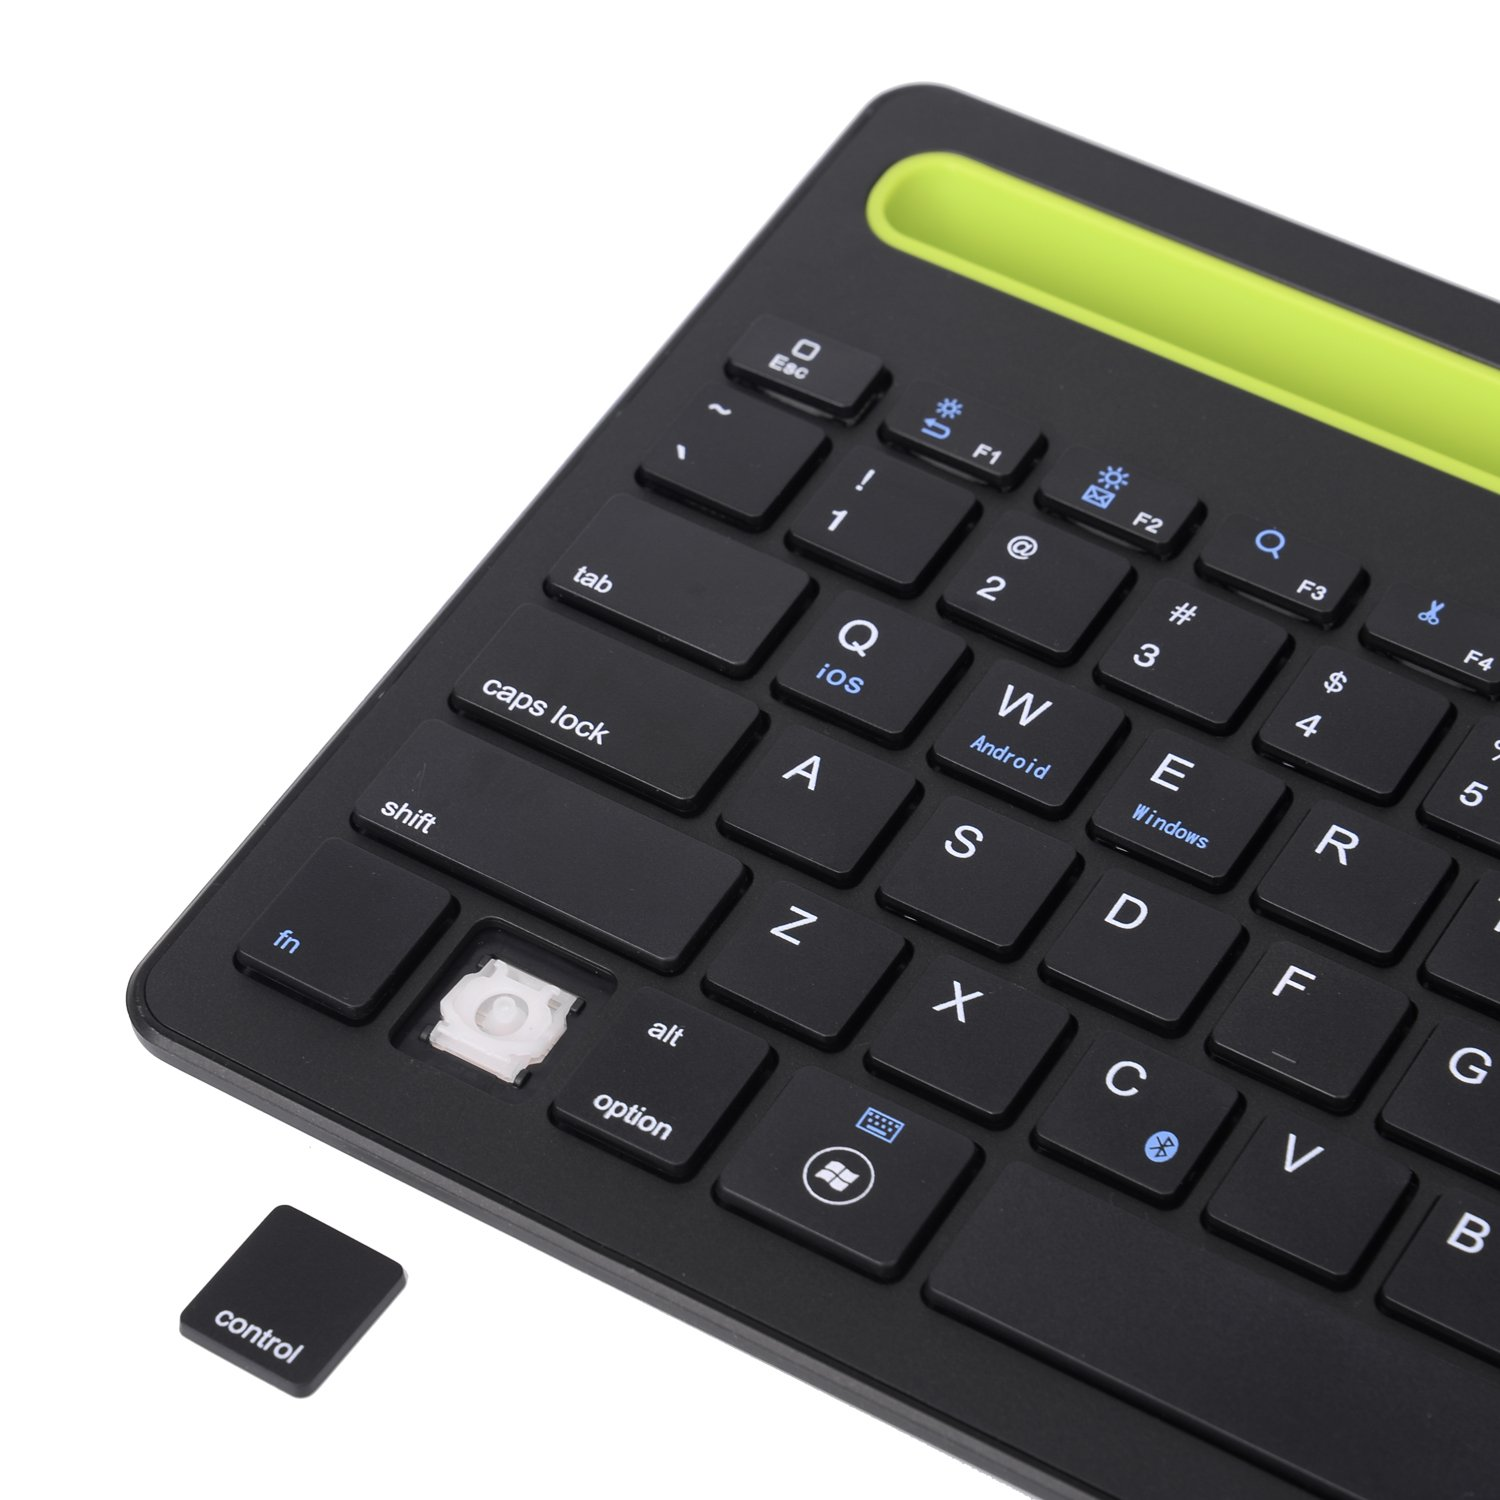 Sky Hiker Bluetooth keyboard, Dual Channel Multi-device Universal Bluetooth Rechargeable Keyboard with Integrated Stand for for Windows Android iOS PC Tablet Smartphone Macbook by Sky Hiker (Image #7)